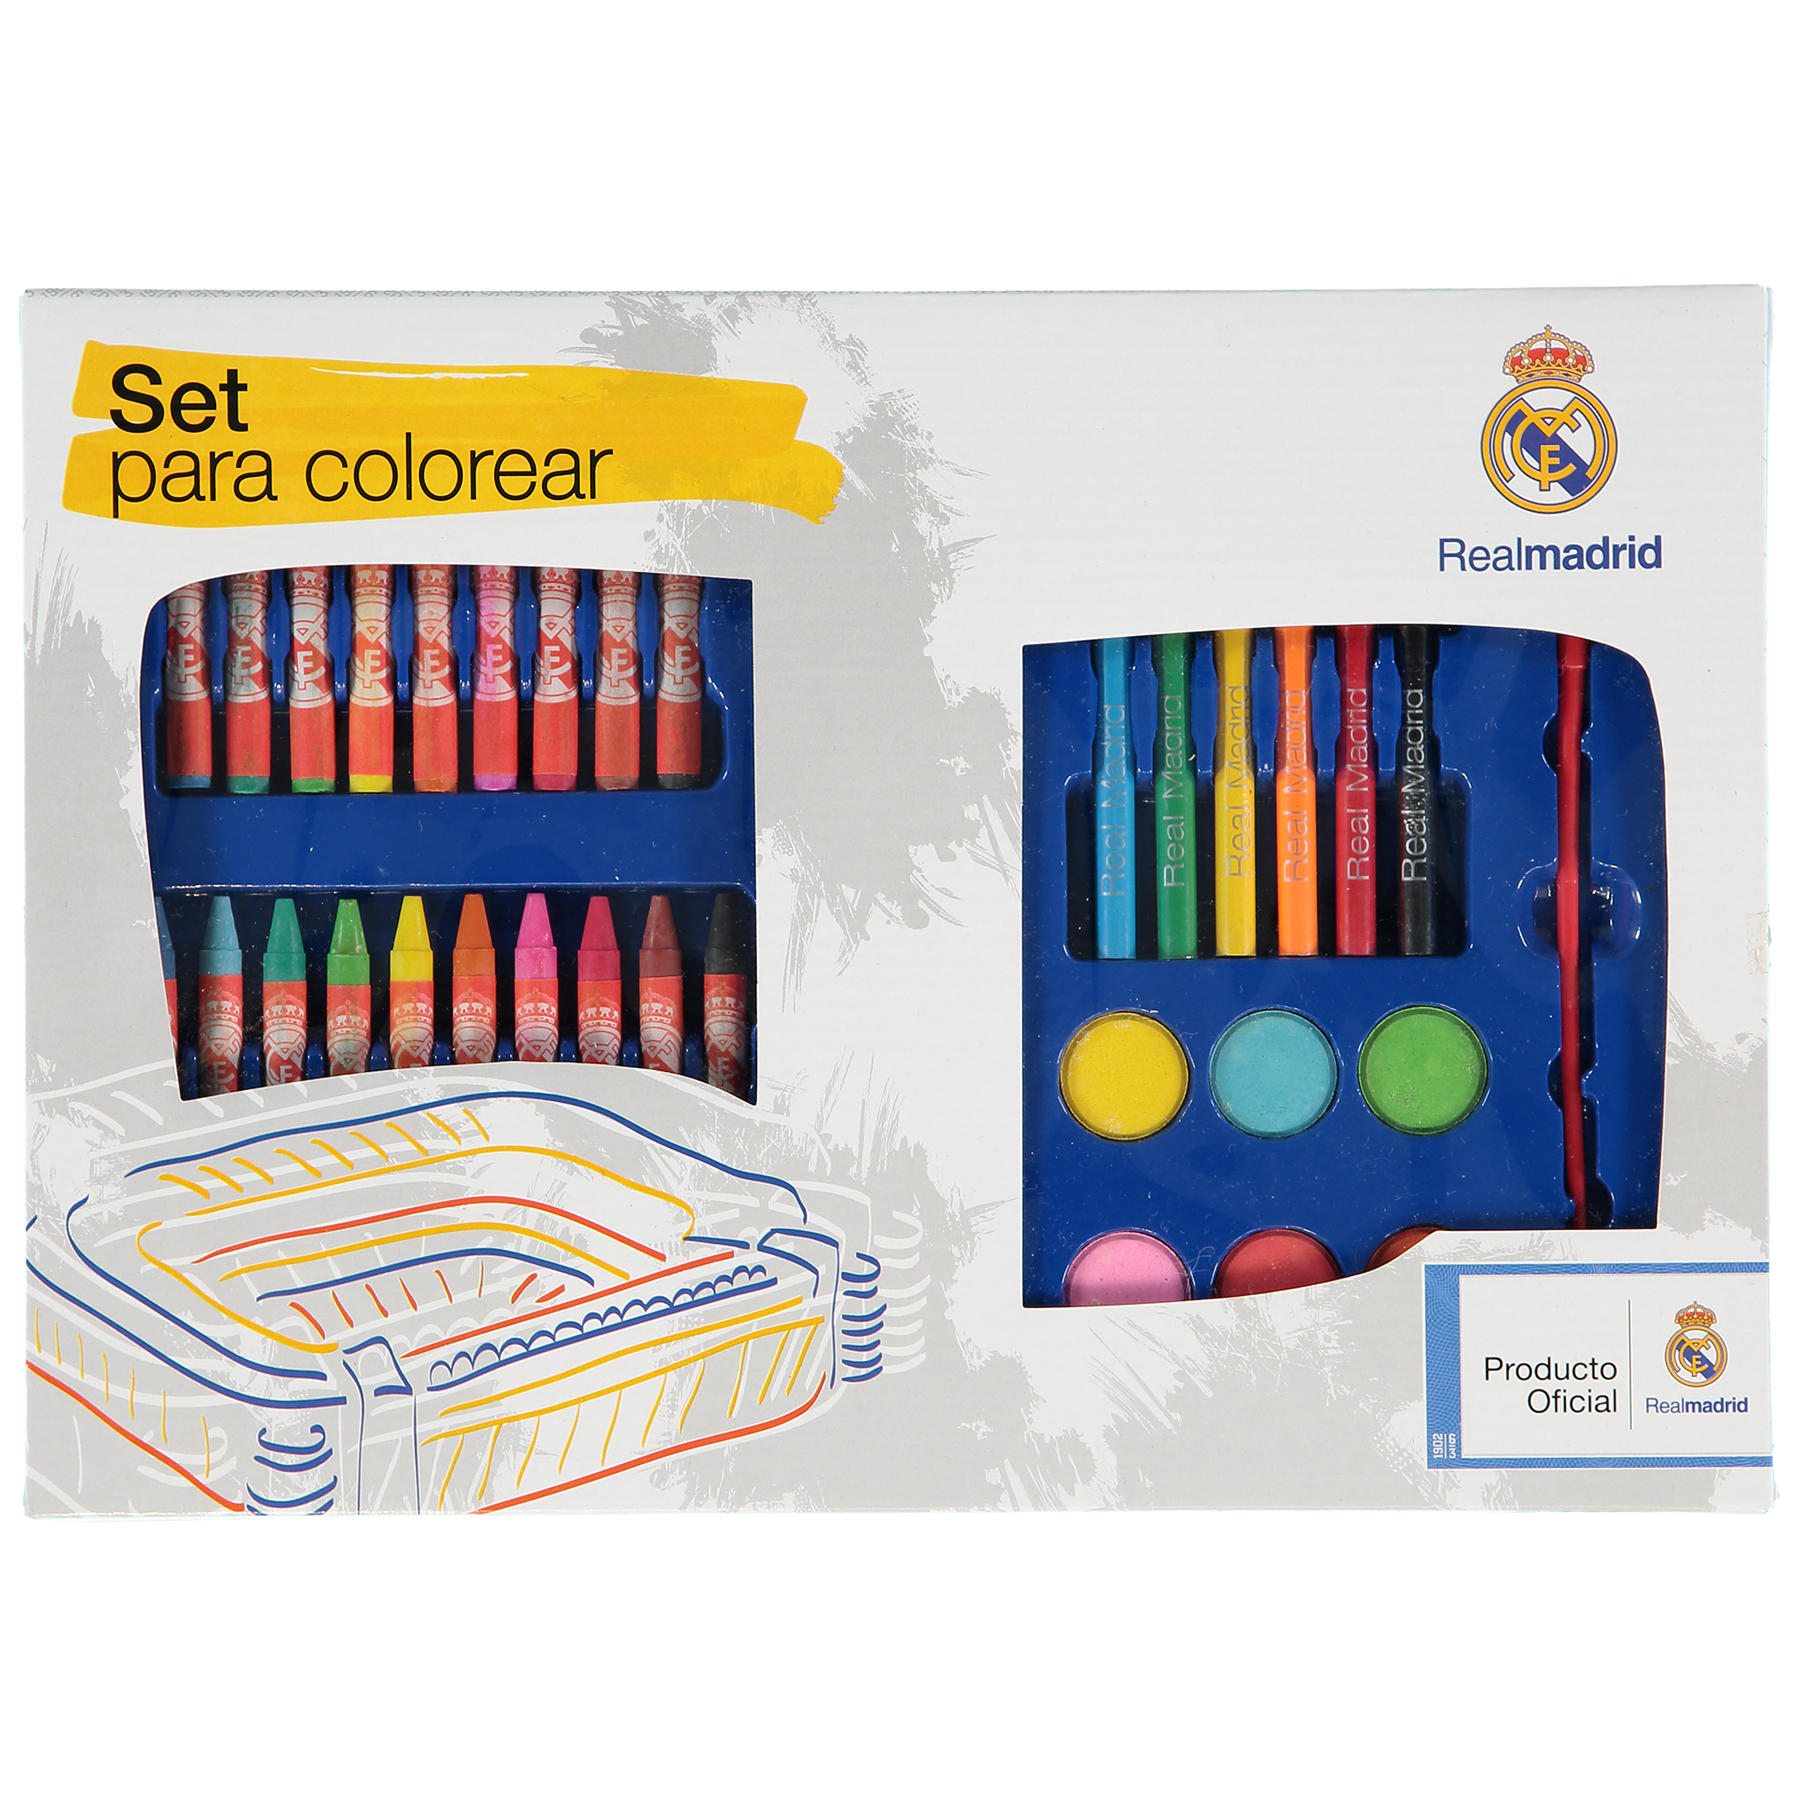 Real Madrid Stationery Set - 45 Pieces